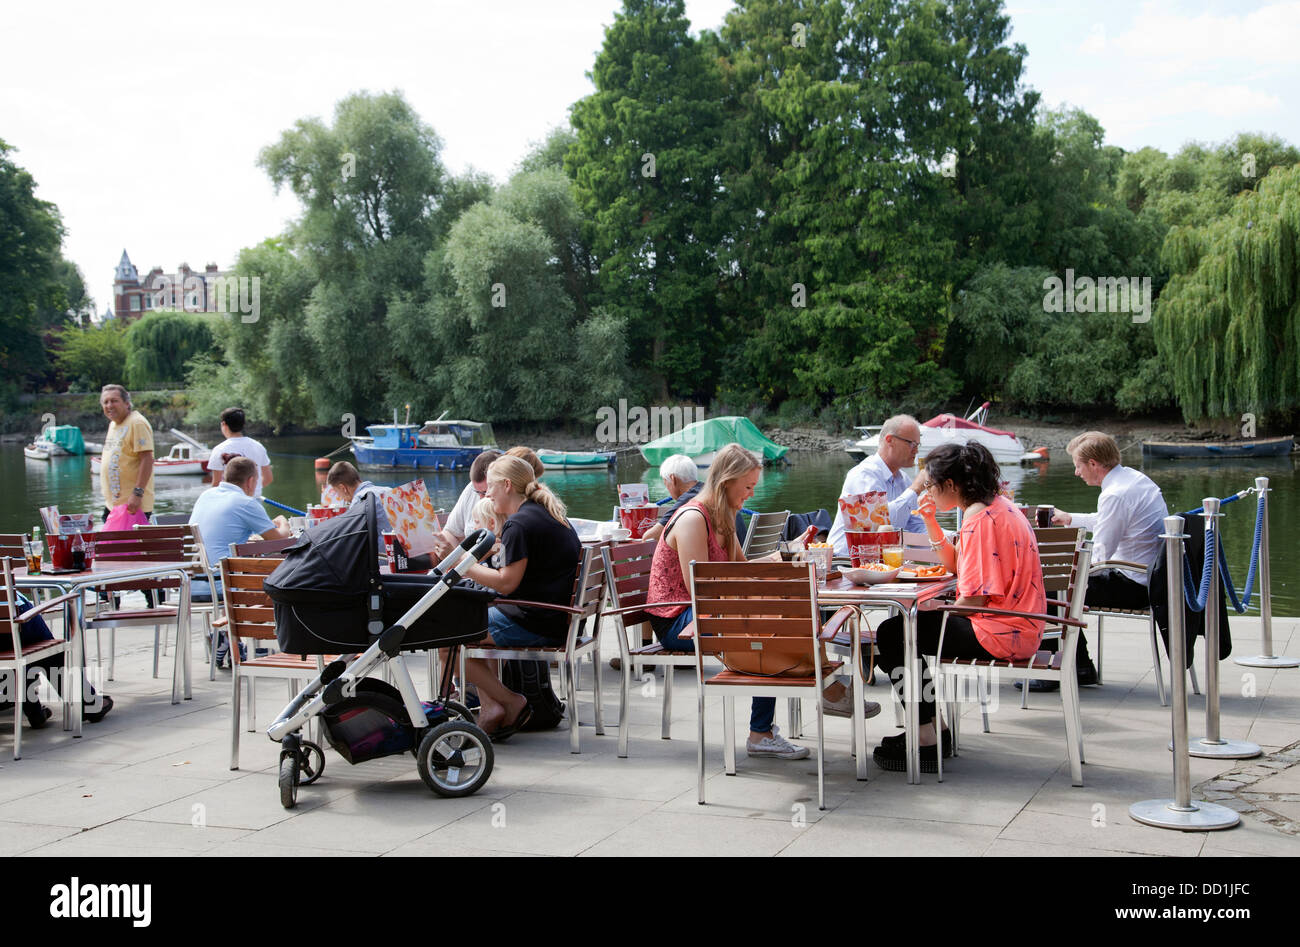 People at Slug & Lettuce Restaurant on Richmond Riverside Cafe - TW9 - London UK - Stock Image